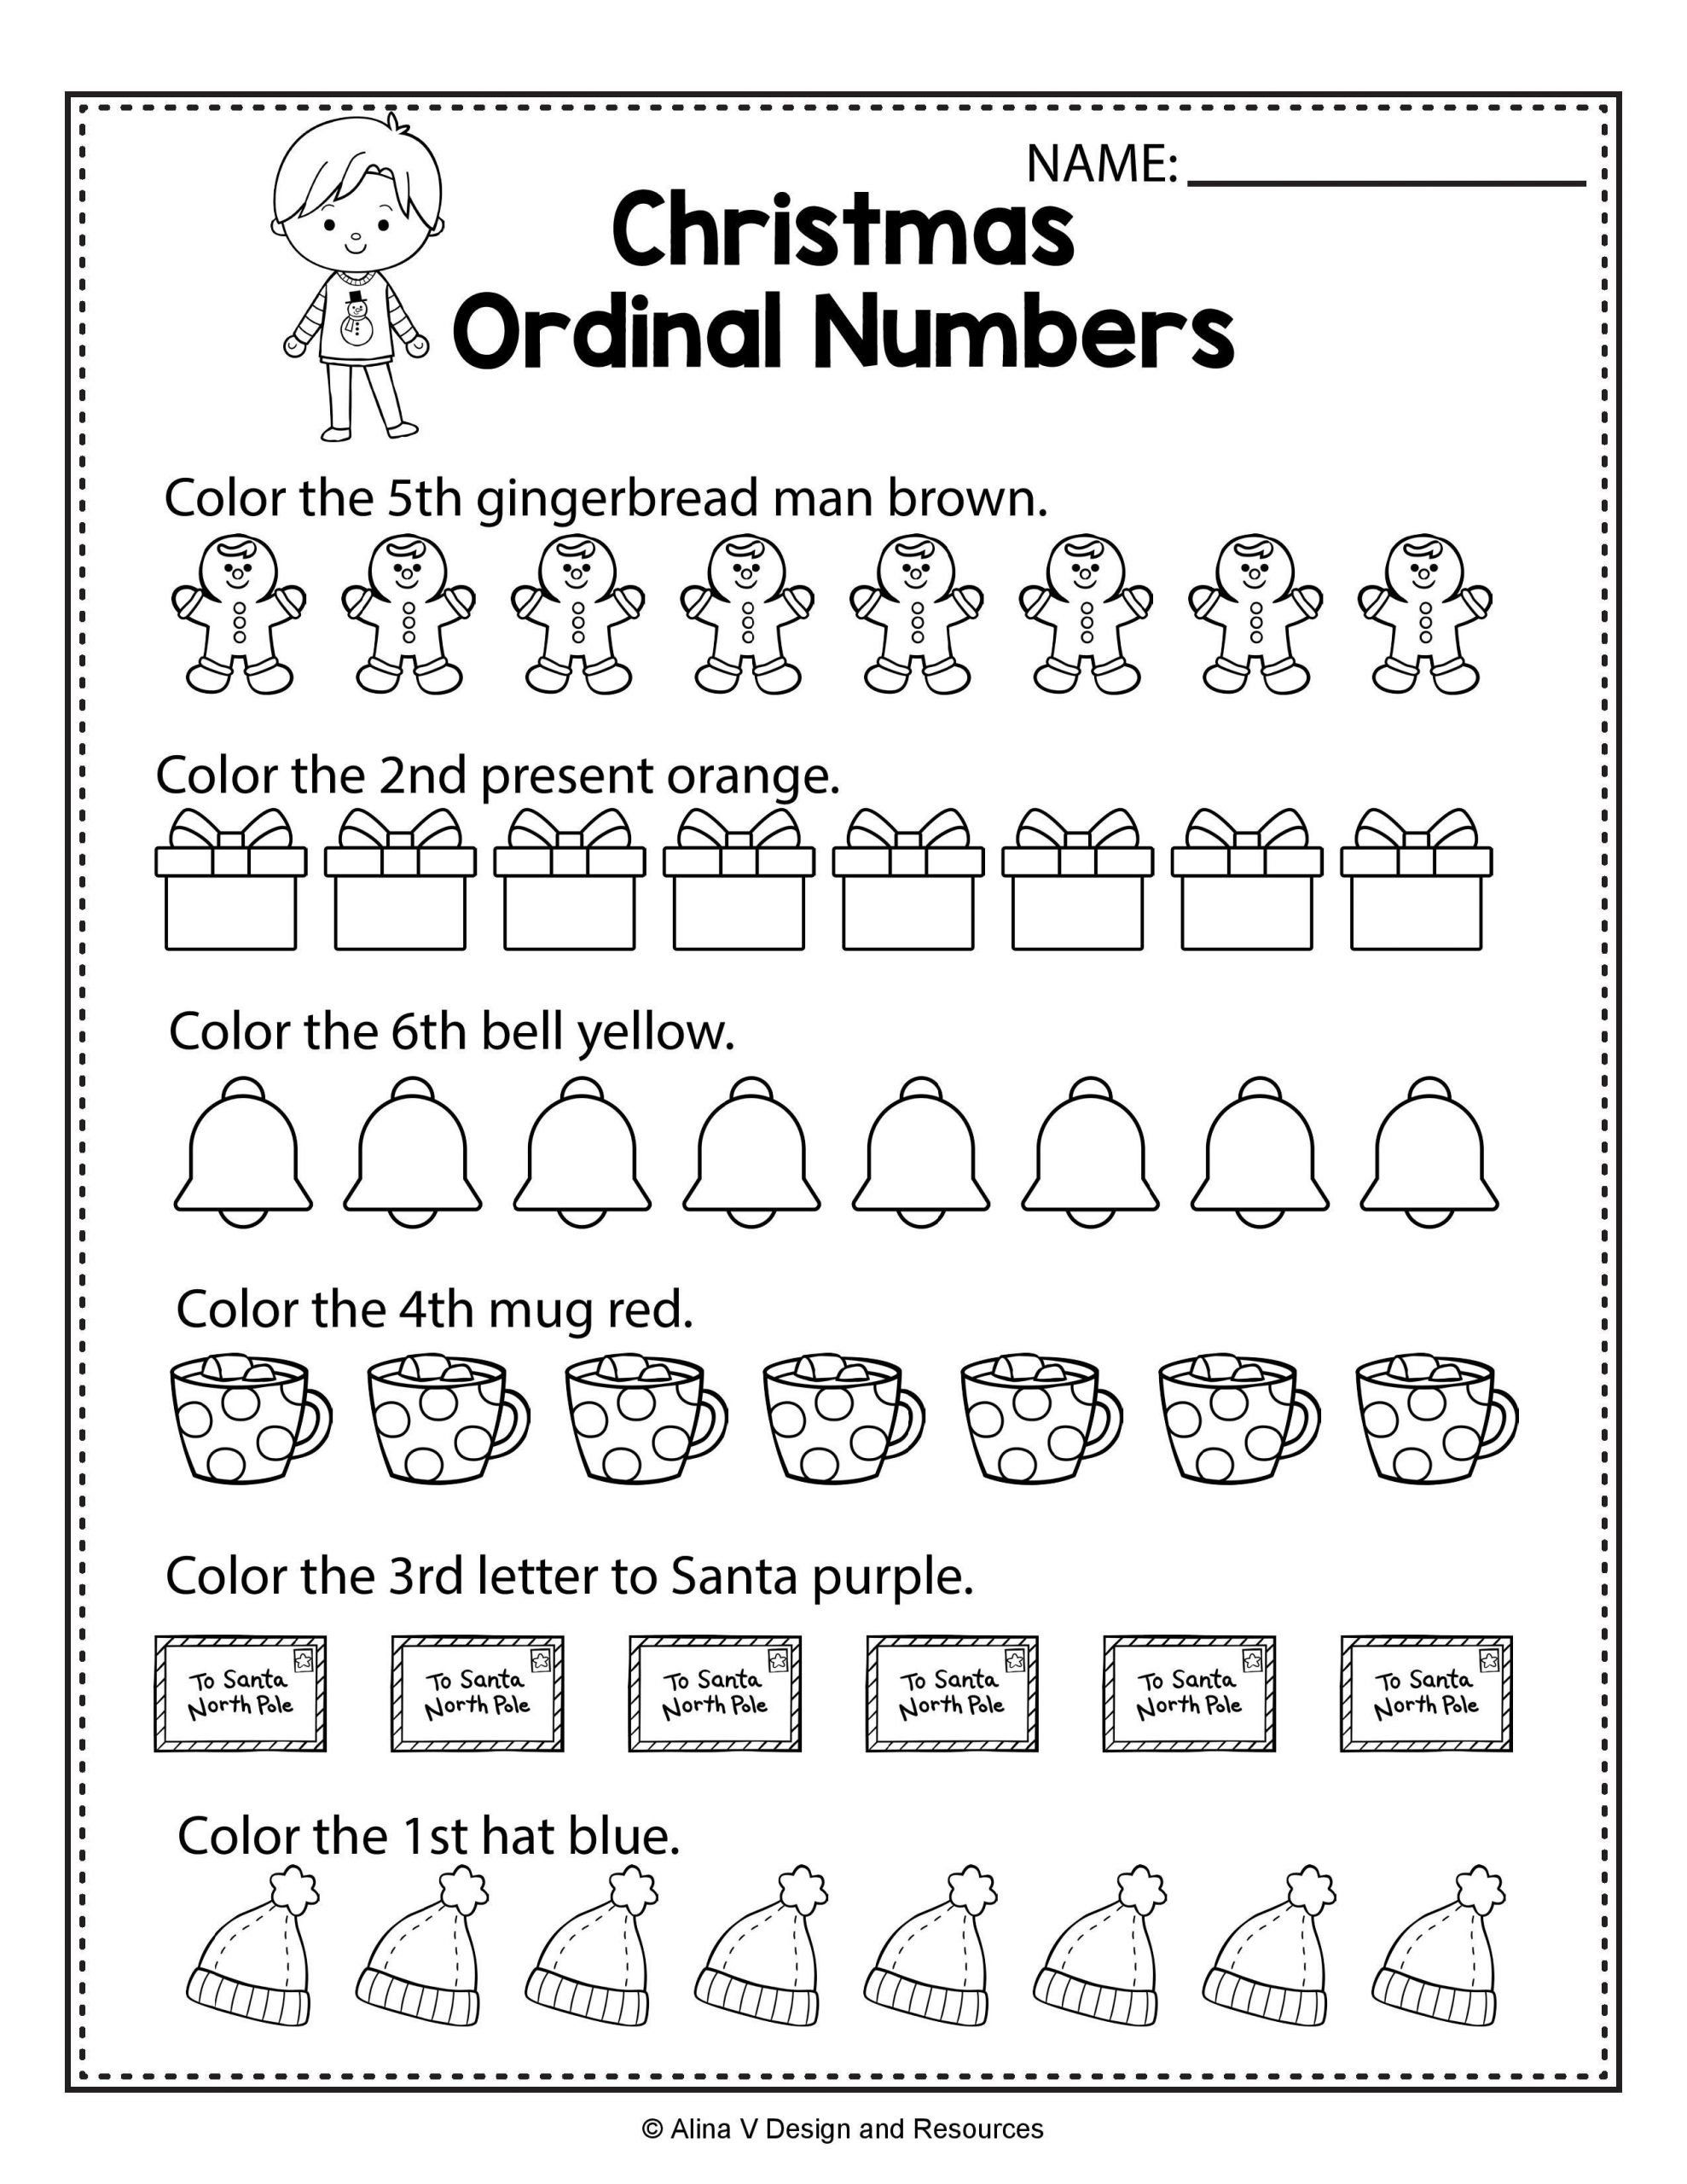 Ordinal Numbers Worksheet Kindergarten Christmas Ordinal